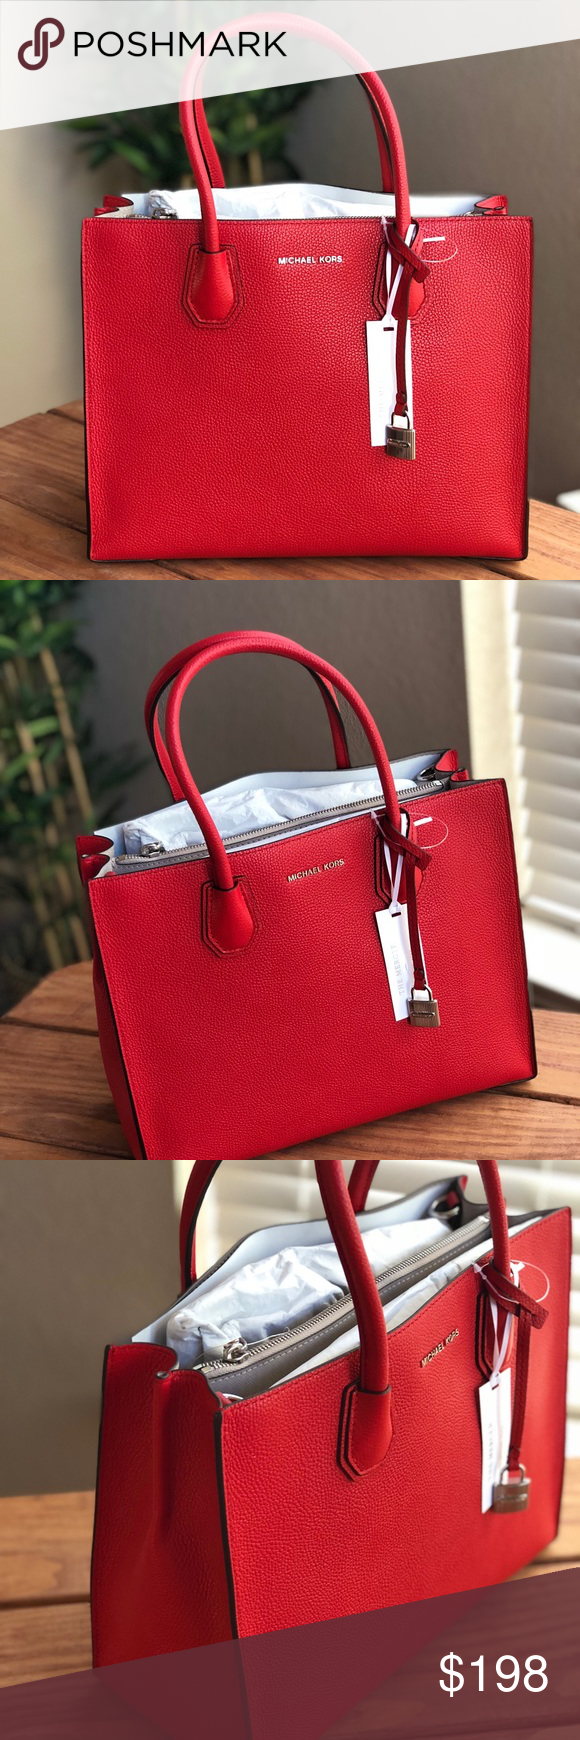 2c393cf2a390 Michael Kors Mercer Large Leather Tote Bright Red Description A Michael  Kors Mercer tote crafted in